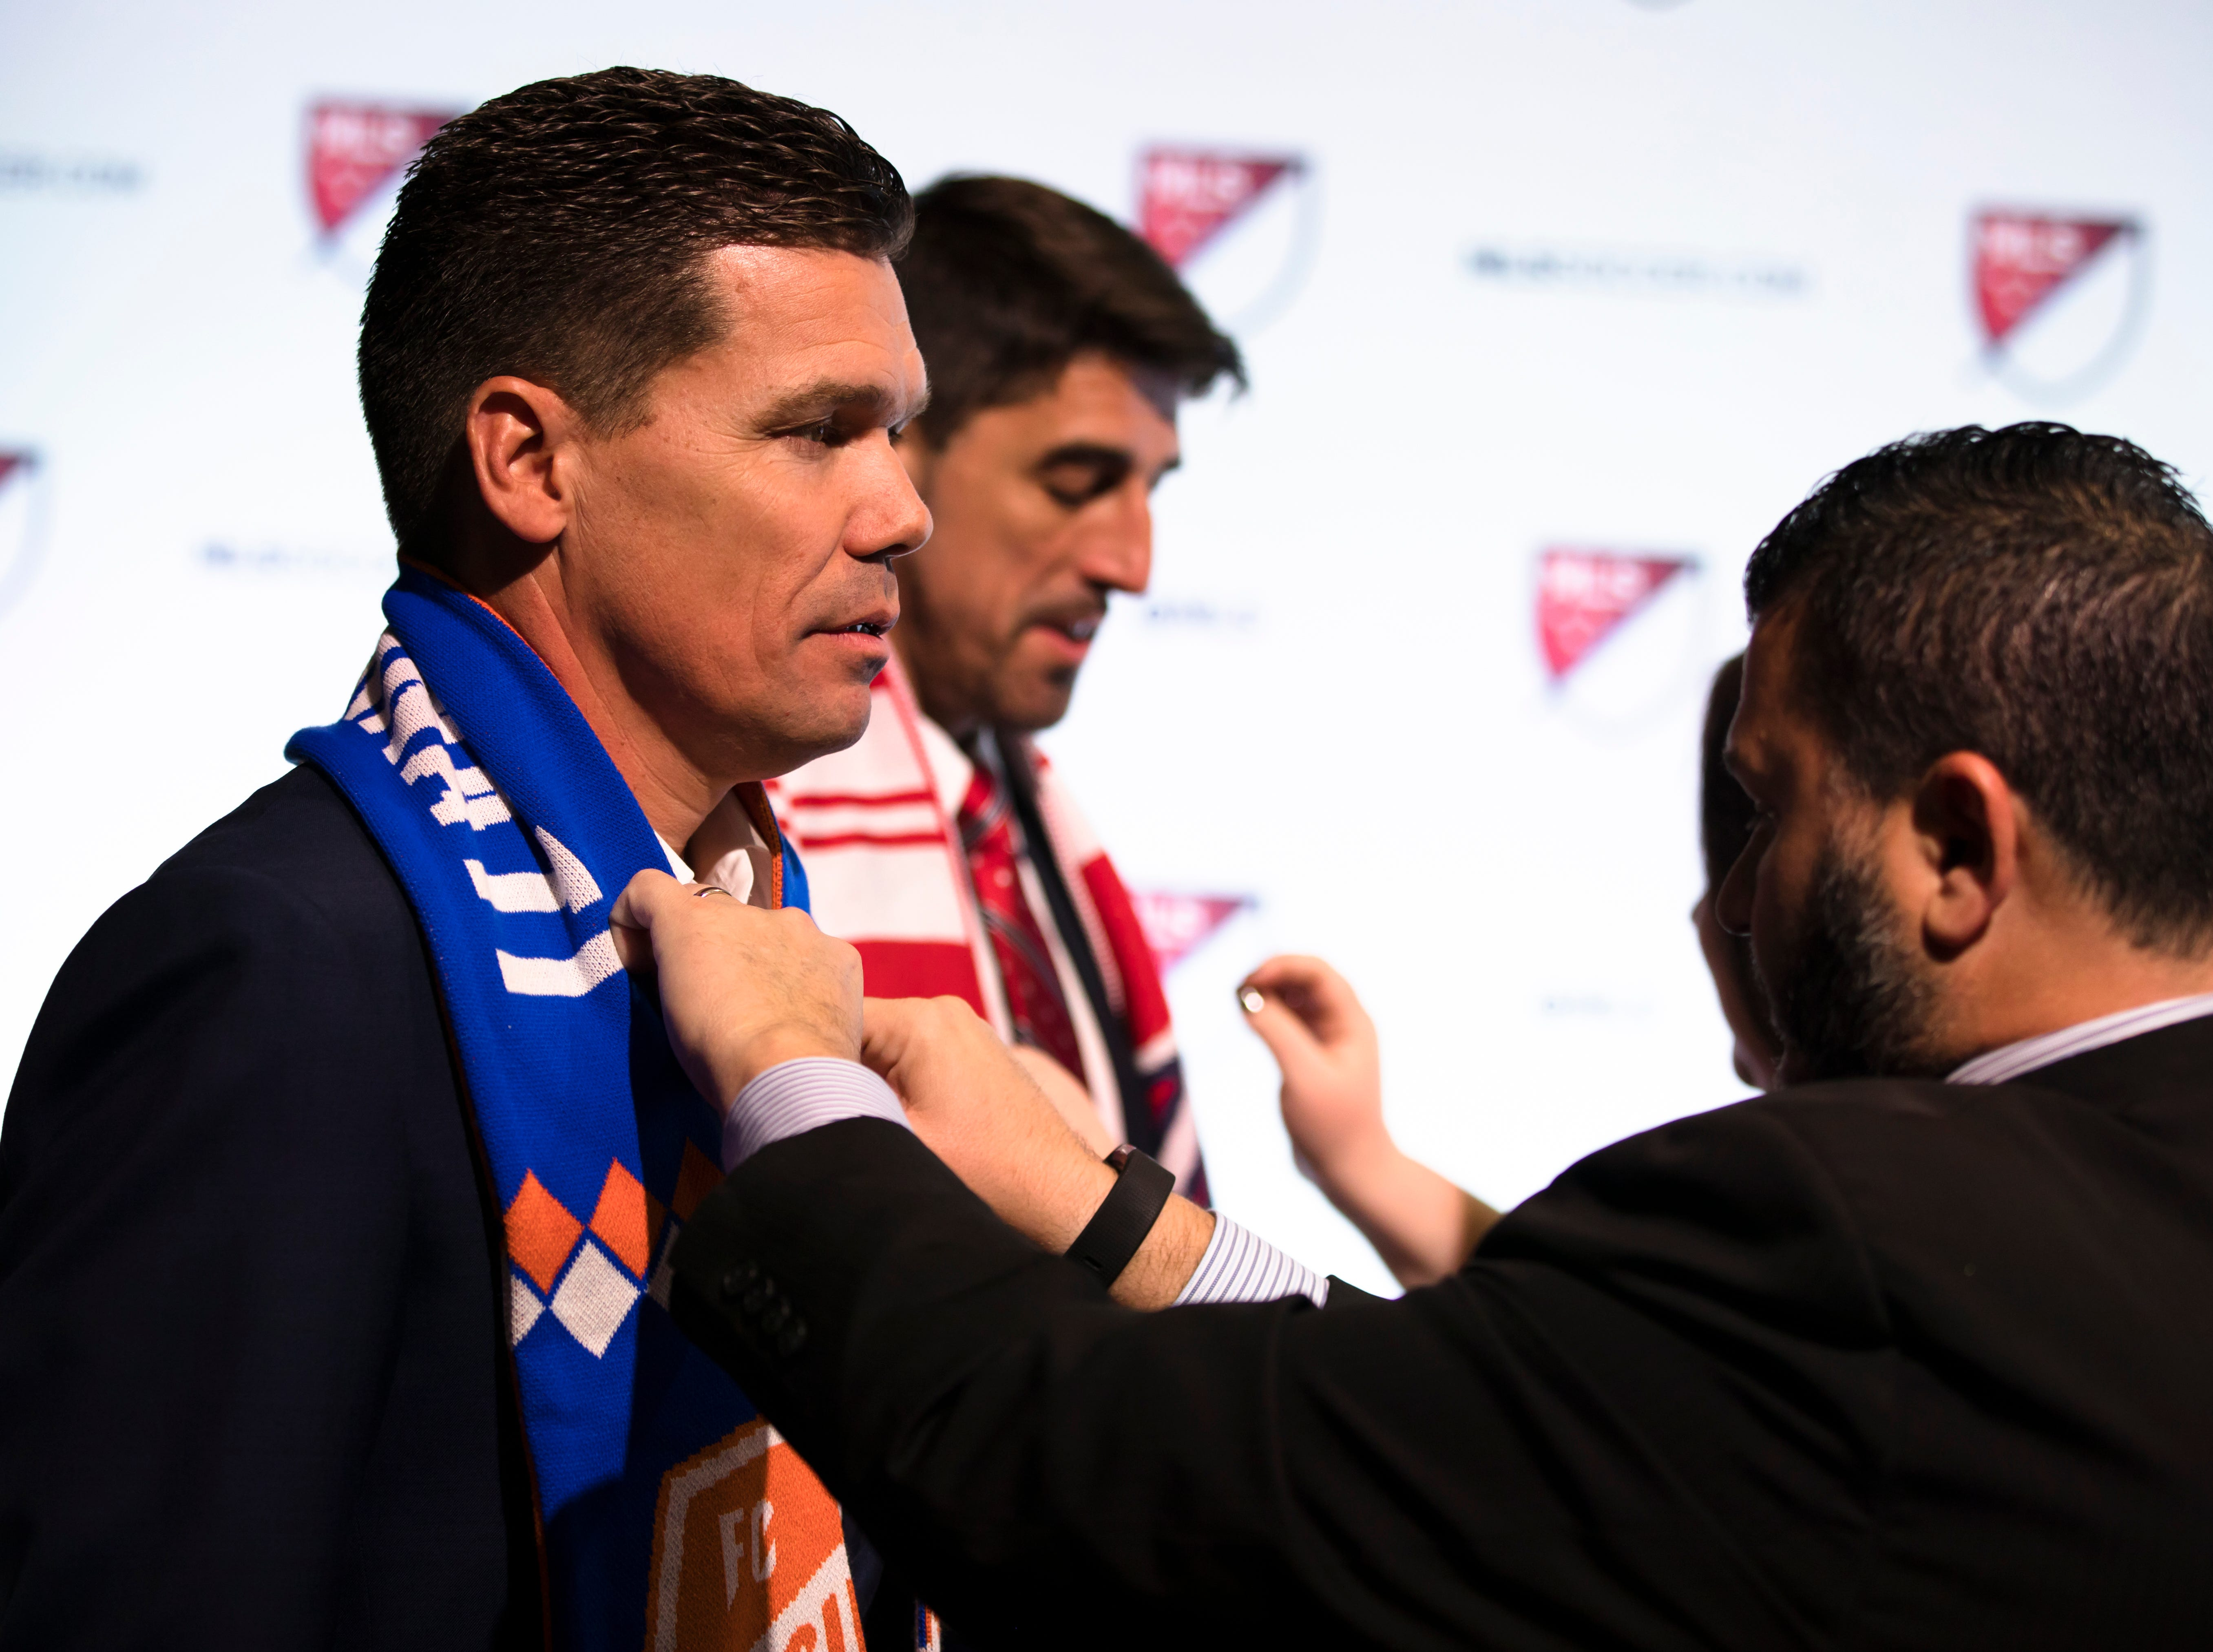 FC Cincinnati Manager Alan Koch stands for a picture with the rest of the MLS Coaches during the MLS Superdraft on Friday, Jan. 11, 2019 in Chicago, Illinois.